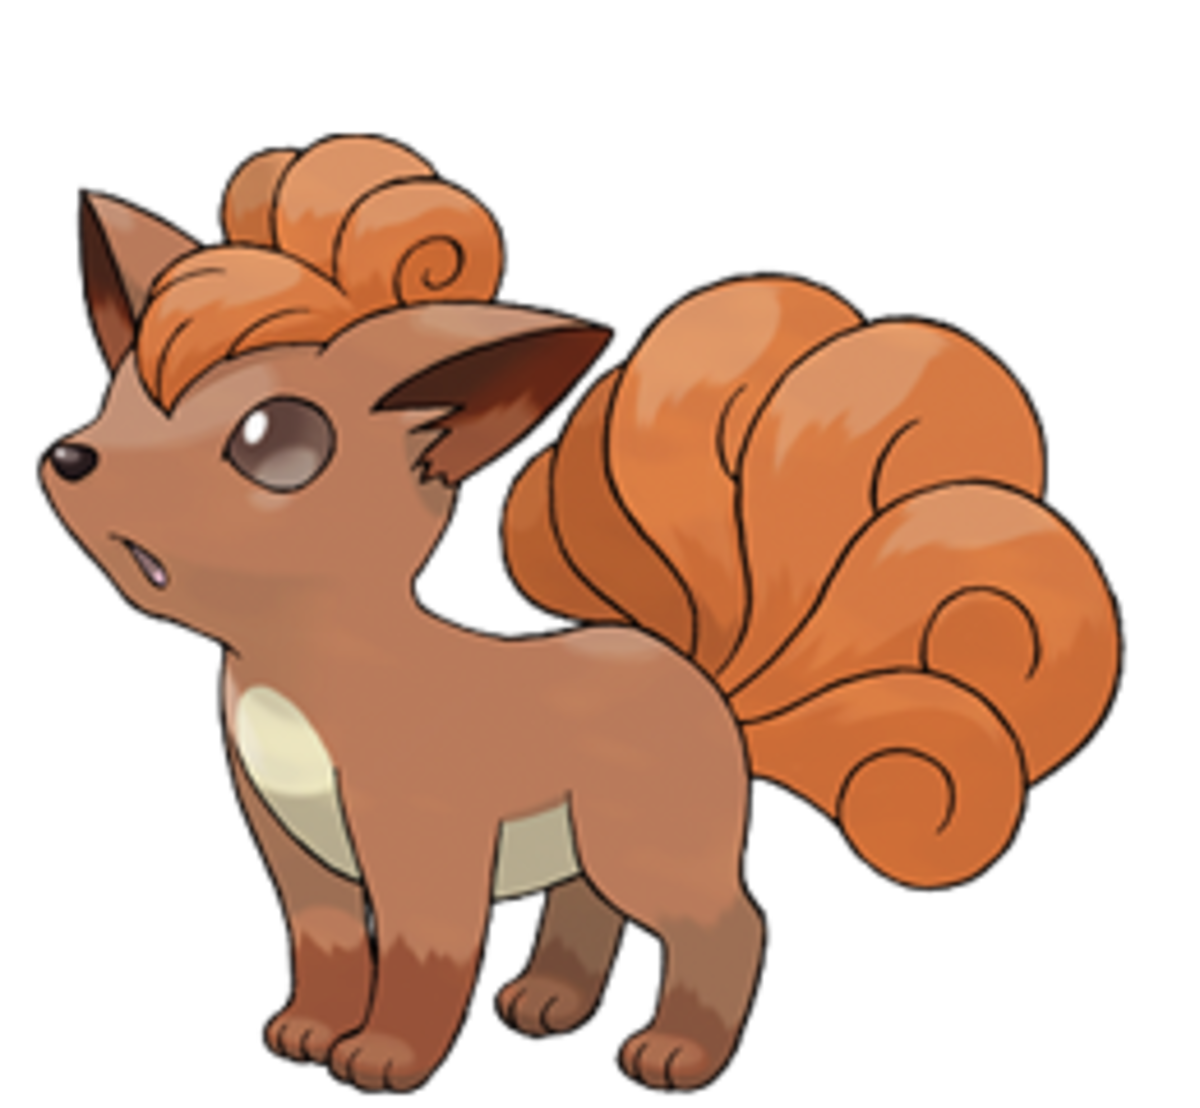 This Little Fox Pokemon Is Very Cute And Was Under The Care Of Brock For A While It Has Some Fur On Top Its Head Thick Tail